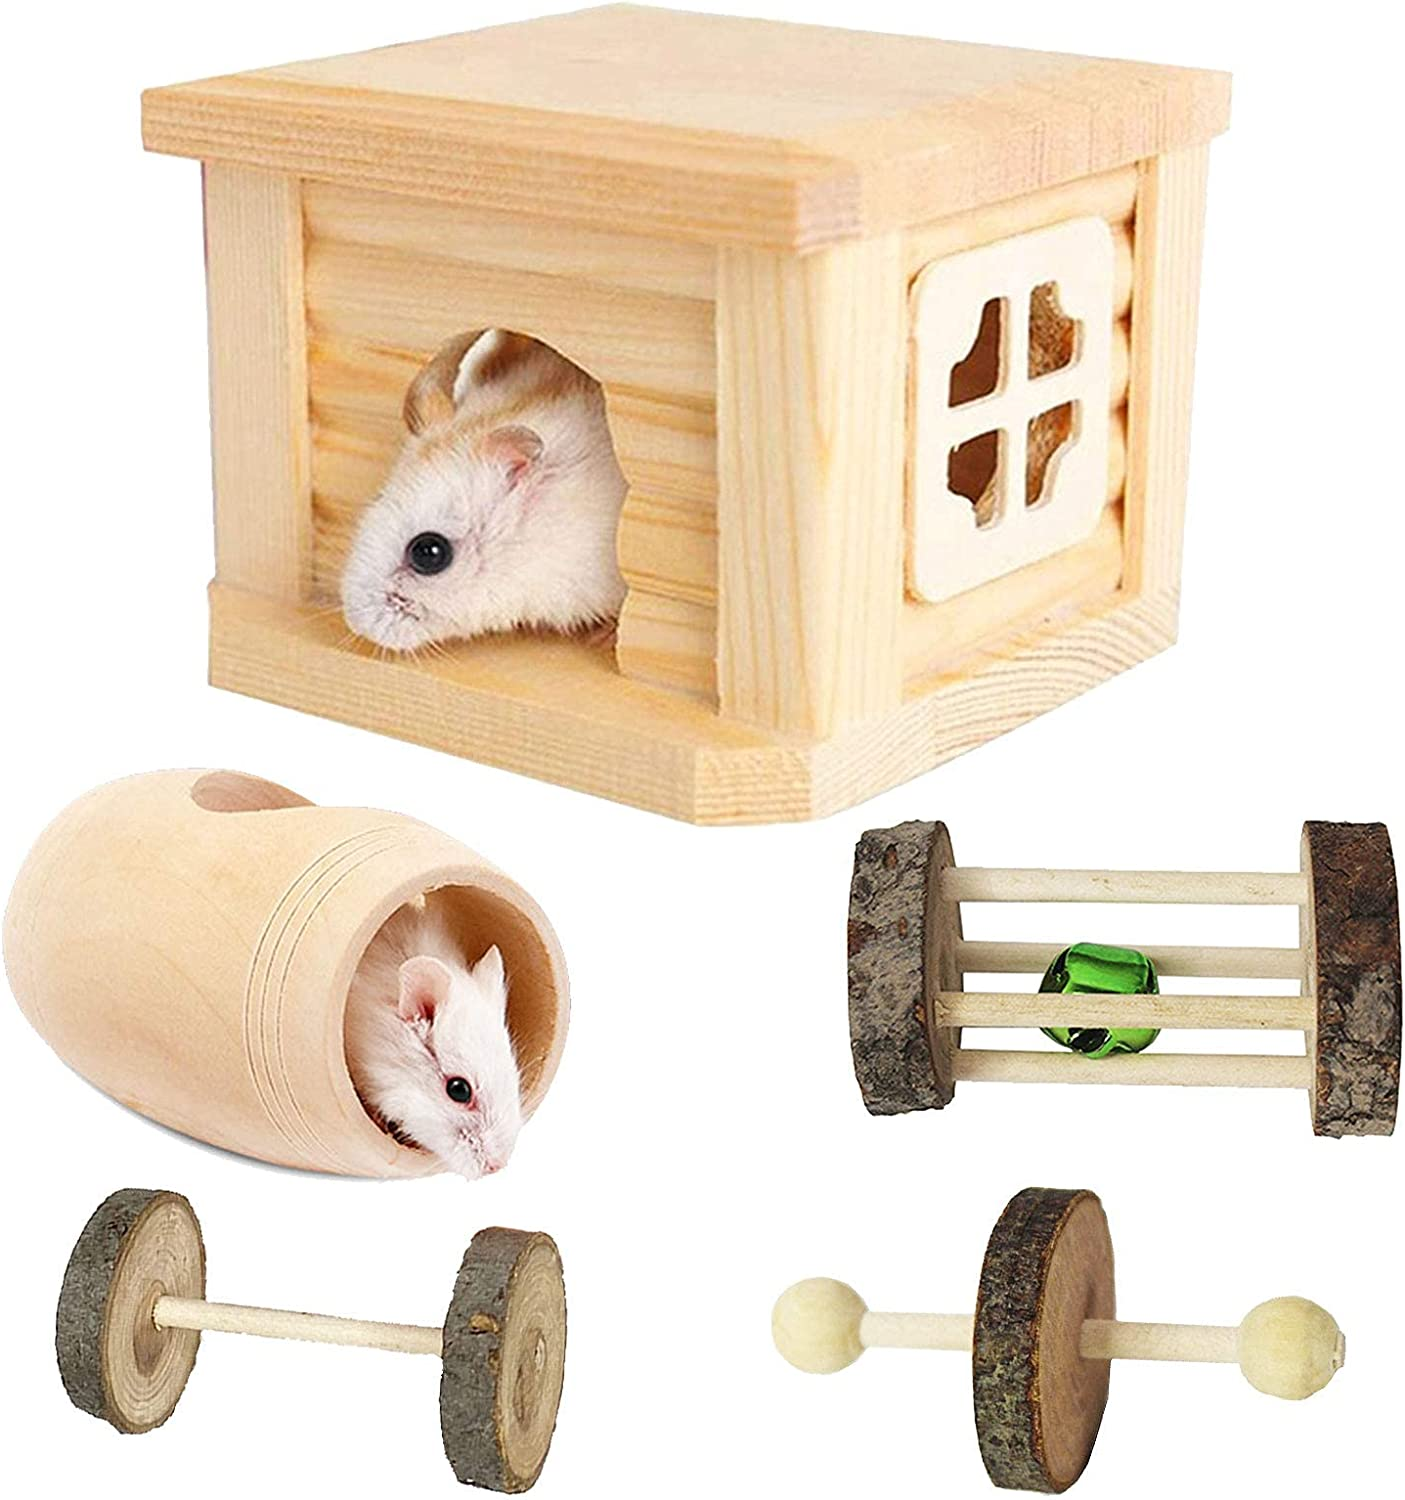 Toylord Dwarf Hamster House Wooden Fixed Free Shipping New price for sale Smal Tunnel Toys Hideouts Hut